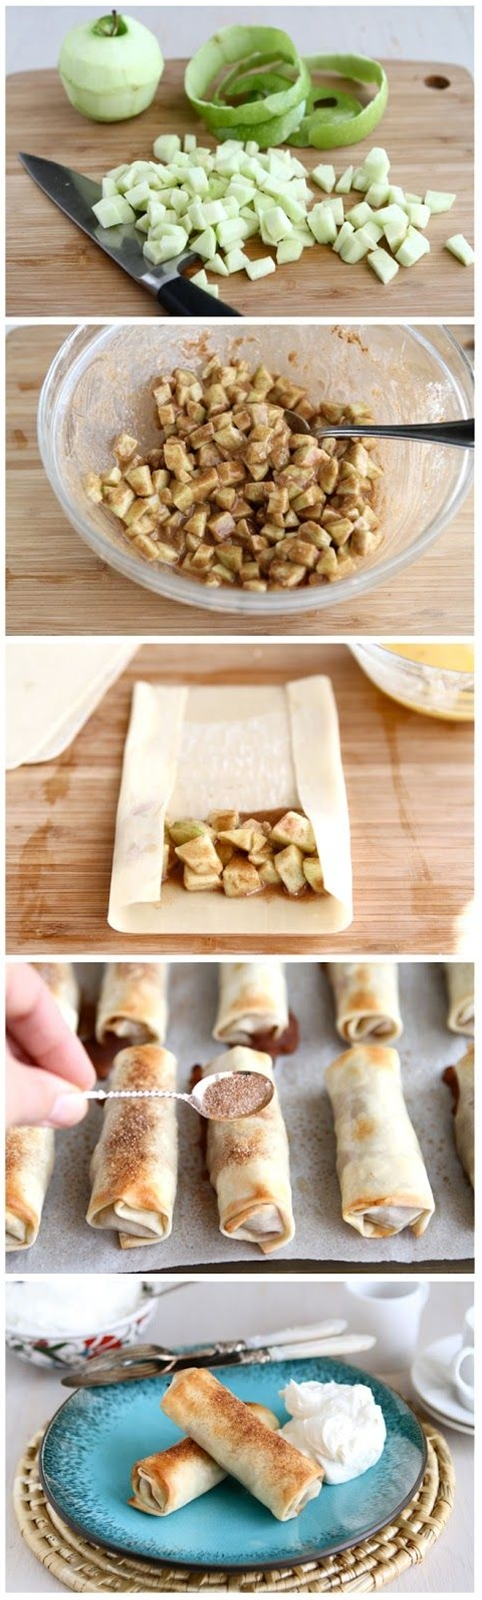 Ingredients: 2 whole Apples, Peeled, Cored And Diced (I Used Granny Smiths),  1 whole Lemon, Juiced,  ⅓ cups Sugar,  4 Tablespoons Flour,  2 teaspoons Cinnamon,  ¼ teaspoons Allspice,  ⅛ teaspoons Salt,  1 whole Egg Beaten,  10  To 12 Egg Roll Wrappers,  1 Tablespoon Butter, Melted,  2 teaspoons Cinnamon Sugar, For Dusting.